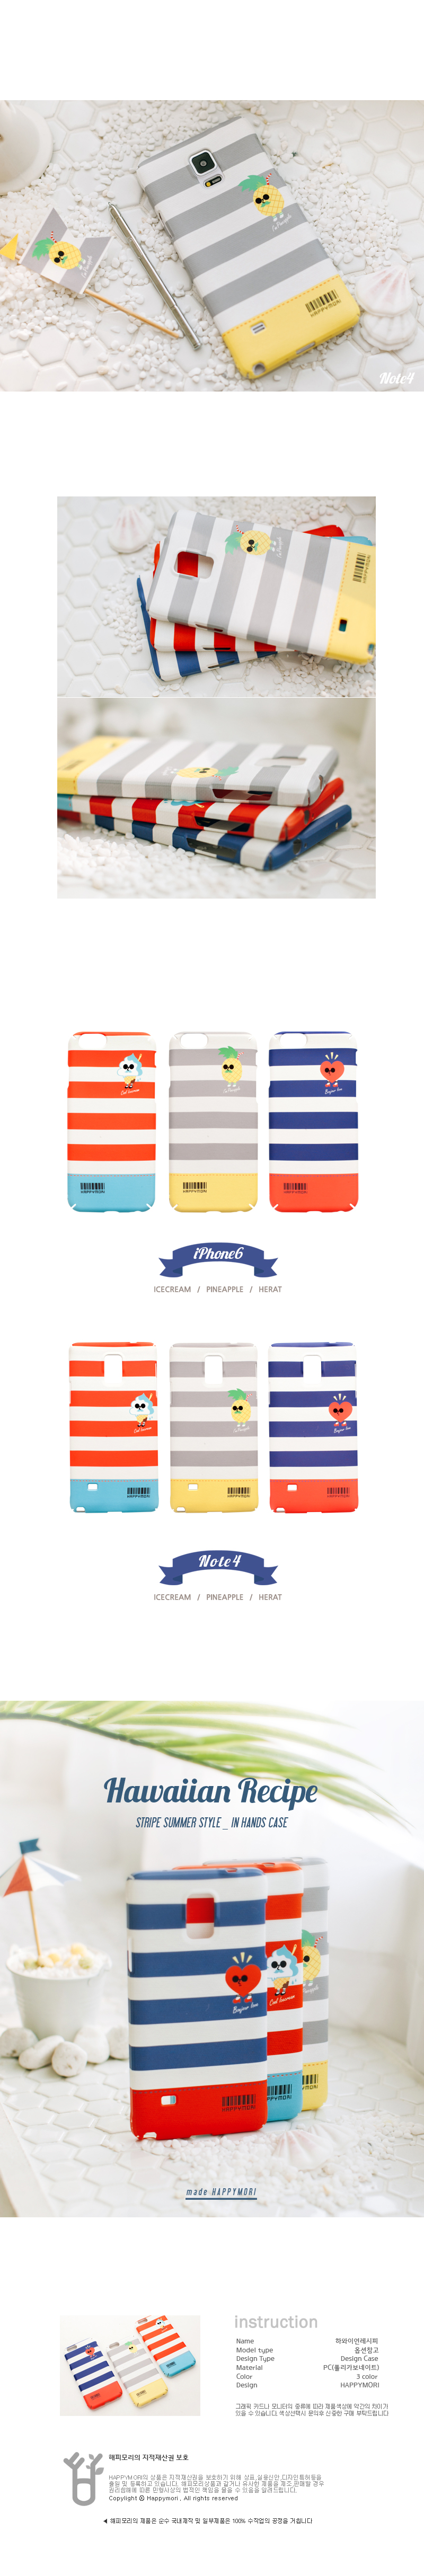 [HAPPYMORI] Hard Case_Hawaiian Recipe 3Color (iPhone6Plus,Galaxy Note4)